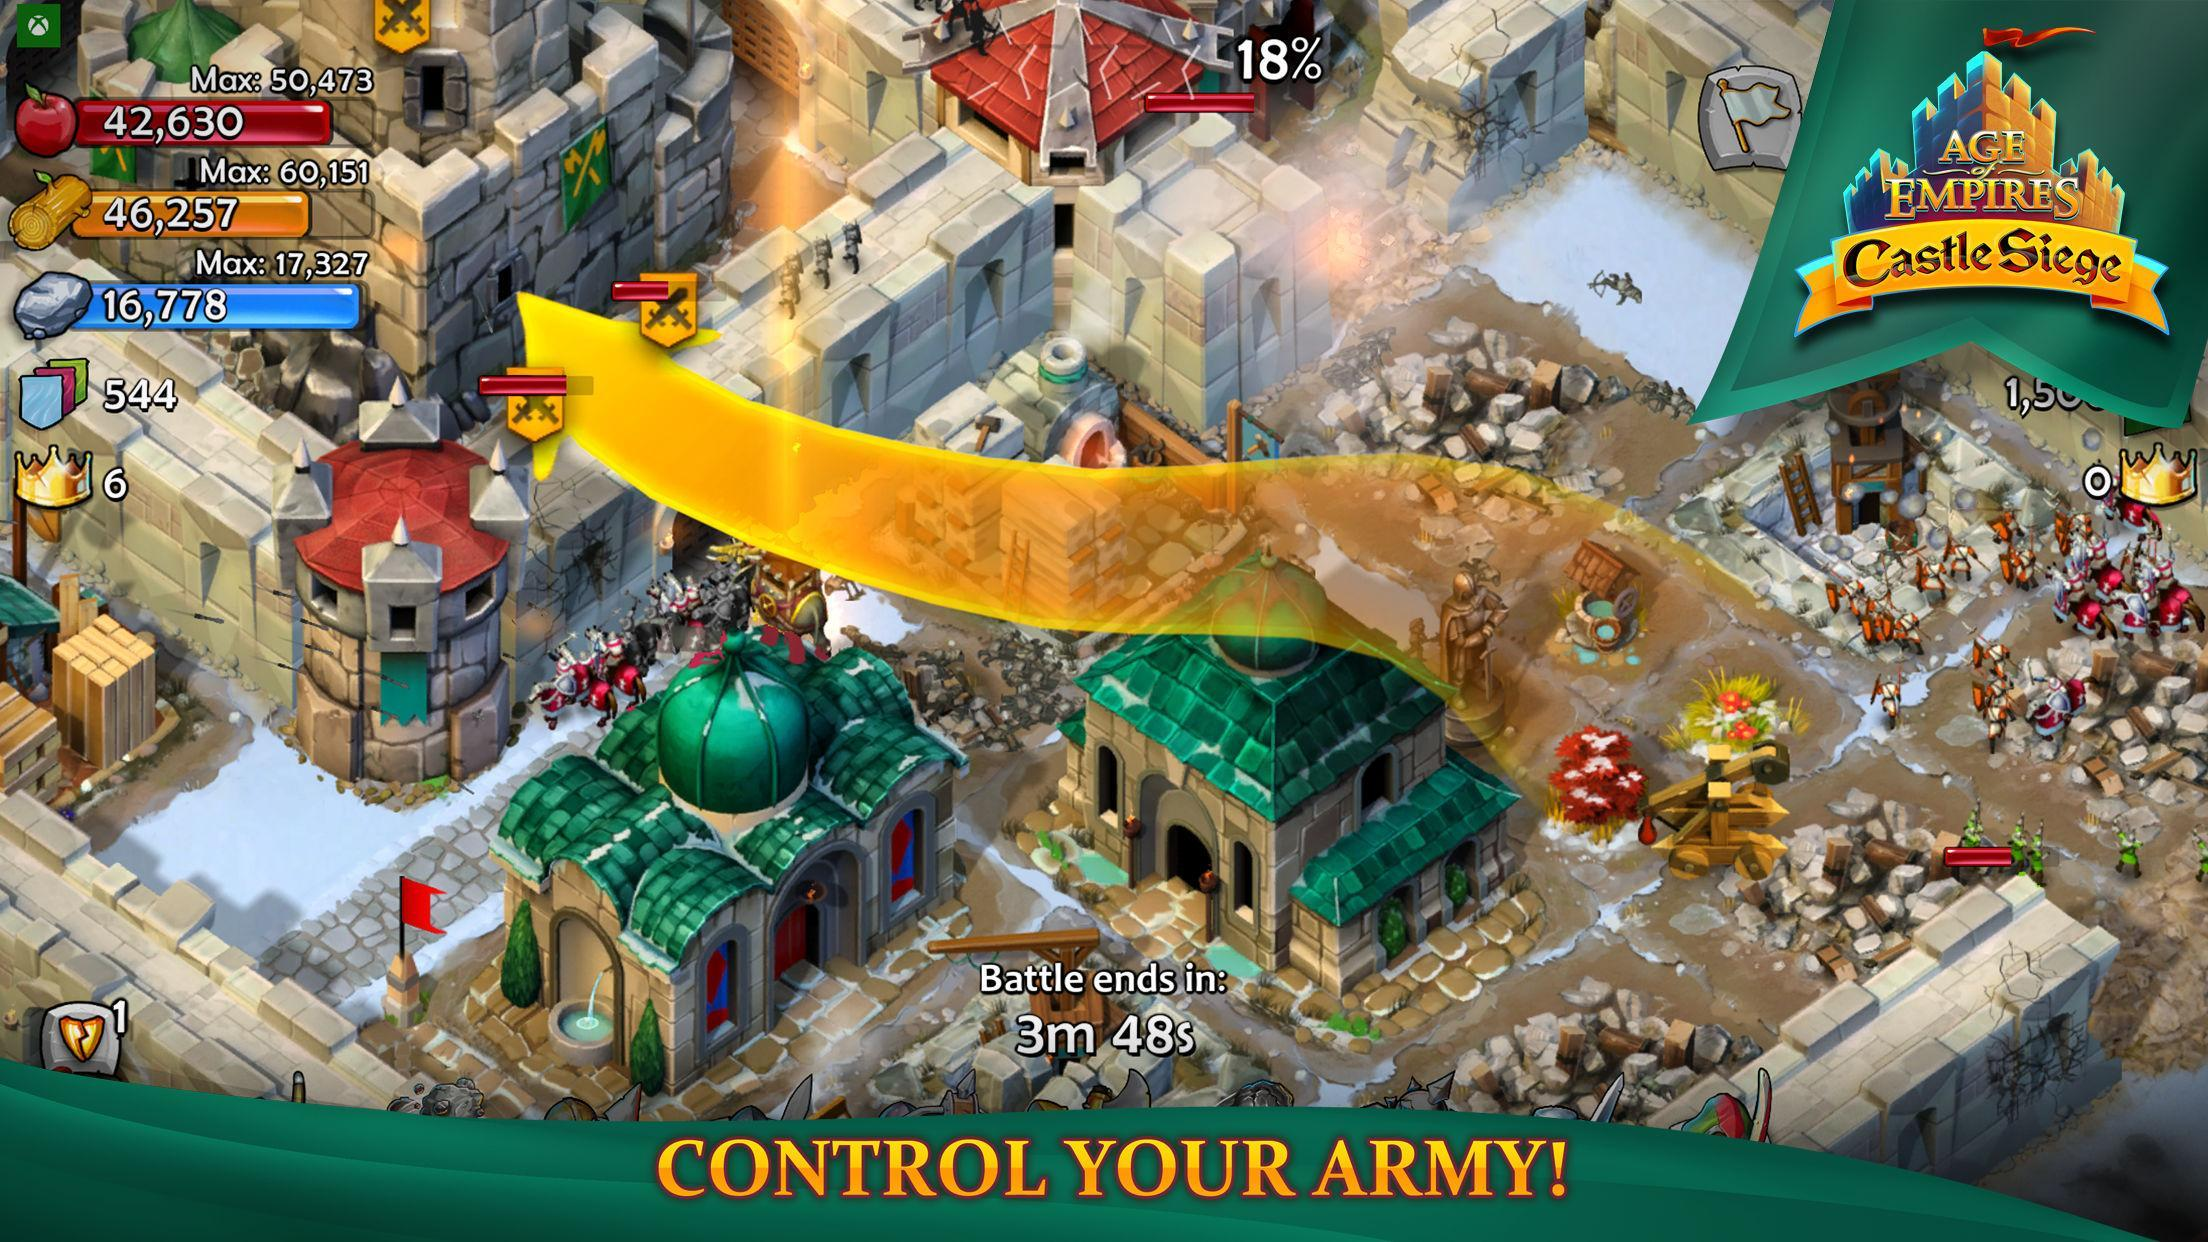 Age of Empires: Castle Siege for Android - APK Download